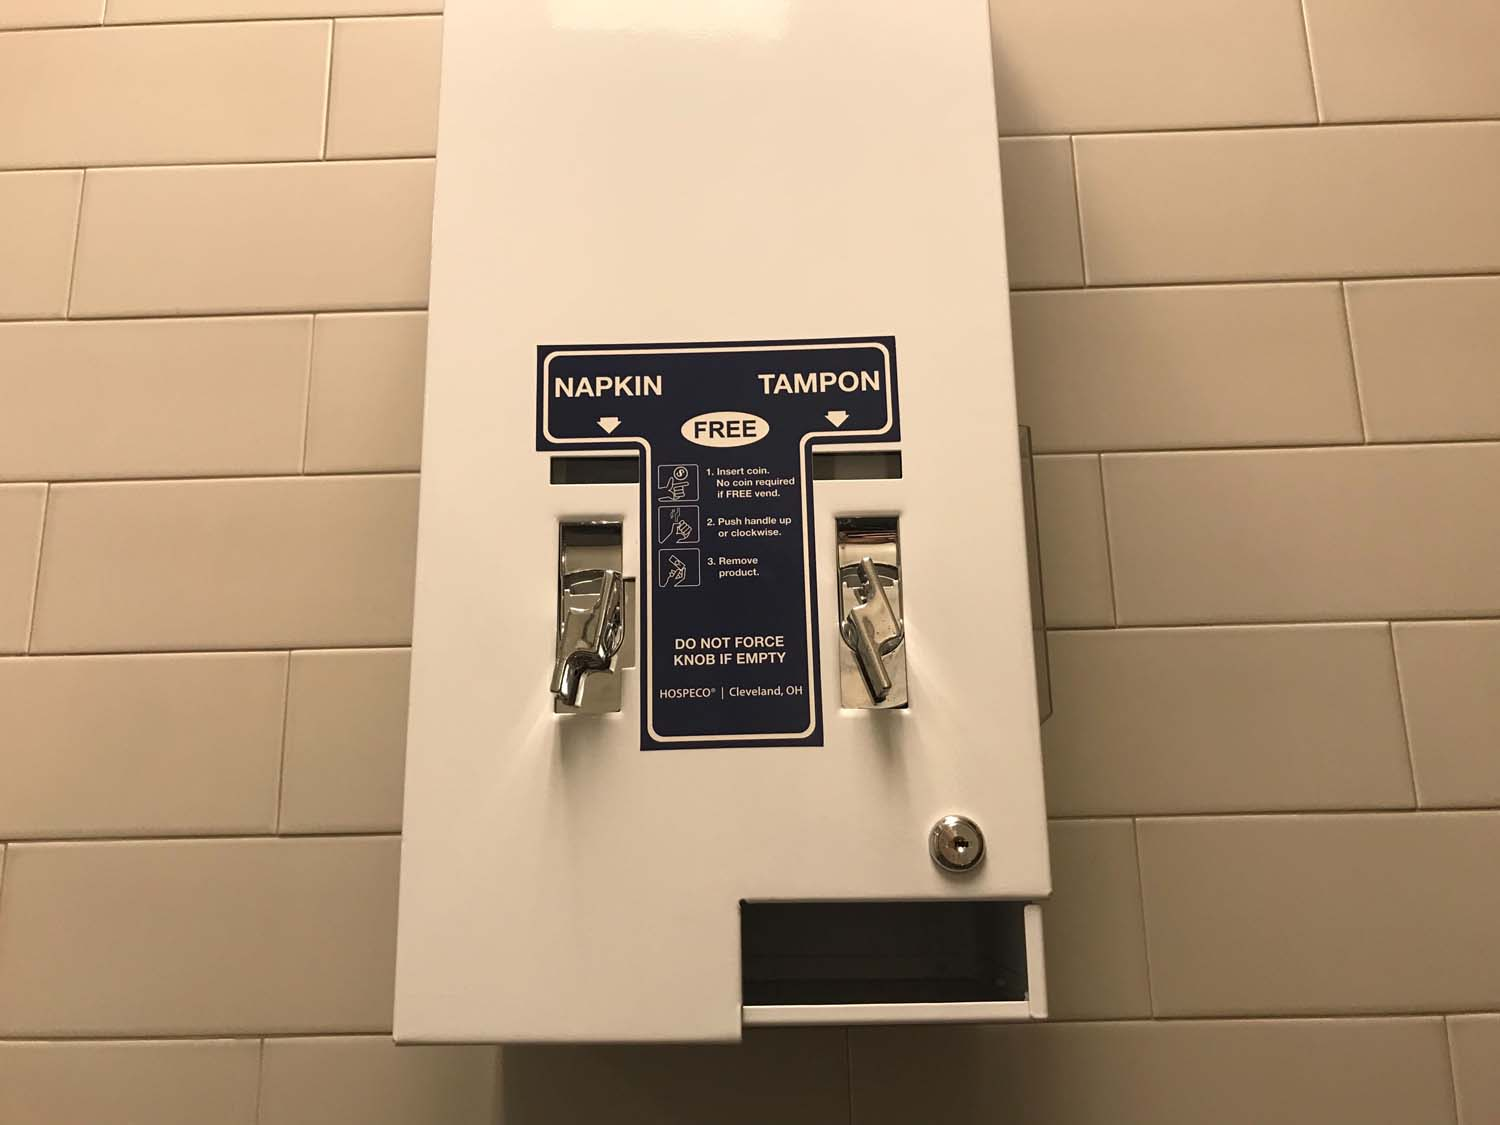 Women's bathrooms in the Cathedral of Learning, the William Pitt Union, Posvar Hall and several other buildings on campus now contain dispensers stocked with free menstrual products.